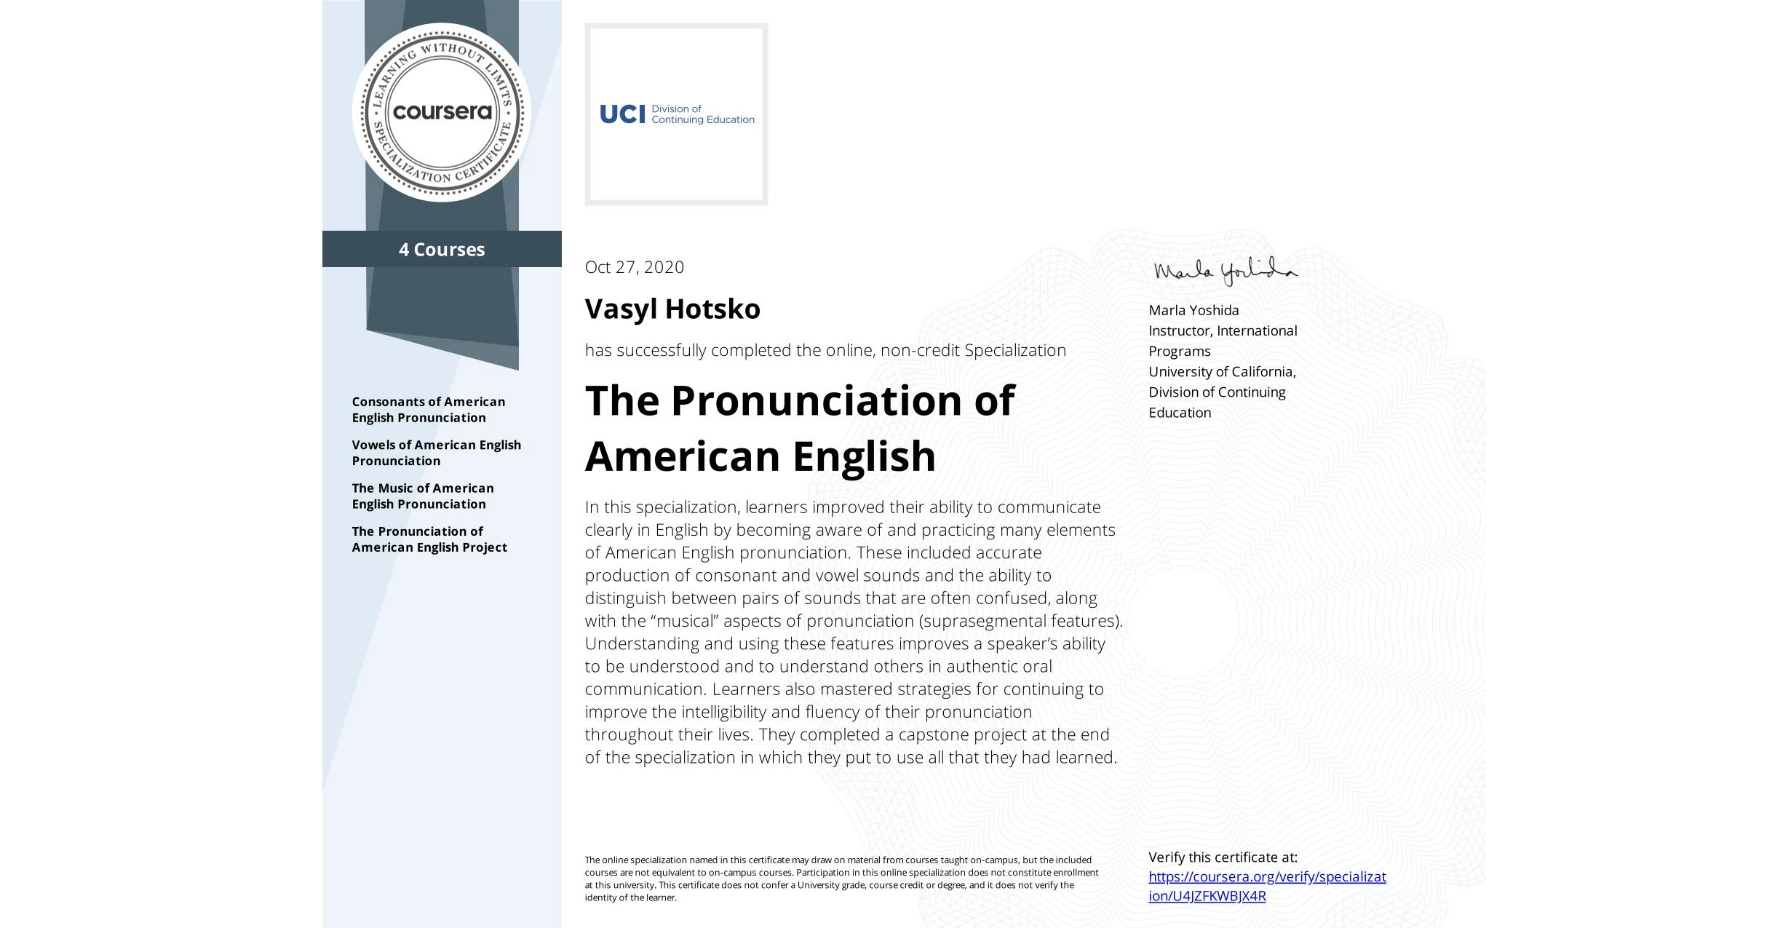 """View certificate for Vasyl Hotsko, The Pronunciation of American English, offered through Coursera. In this specialization, learners improved their ability to communicate clearly in English by becoming aware of and practicing many elements of American English pronunciation. These included accurate production of consonant and vowel sounds and the ability to distinguish between pairs of sounds that are often confused, along with the """"musical"""" aspects of pronunciation (suprasegmental features).  Understanding and using these features improves a speaker's ability to be understood and to understand others in authentic oral communication. Learners also mastered strategies for continuing to improve the intelligibility and fluency of their pronunciation throughout their lives. They completed a capstone project at the end of the specialization in which they put to use all that they had learned."""